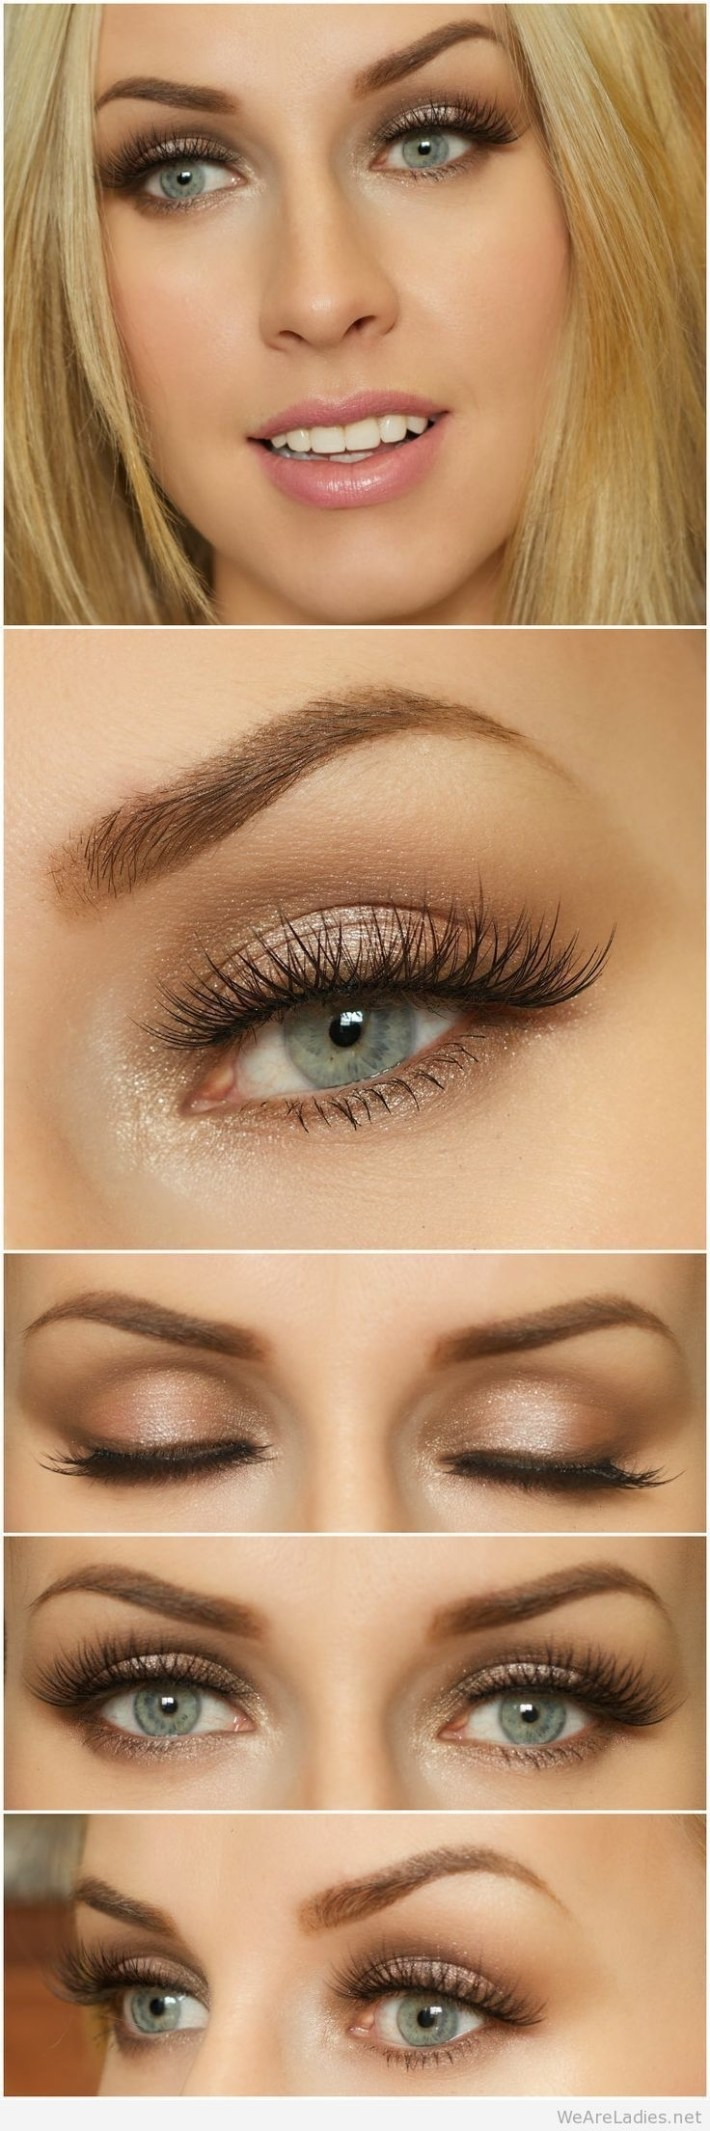 makeup for hazel eyes and blonde hair - wavy haircut